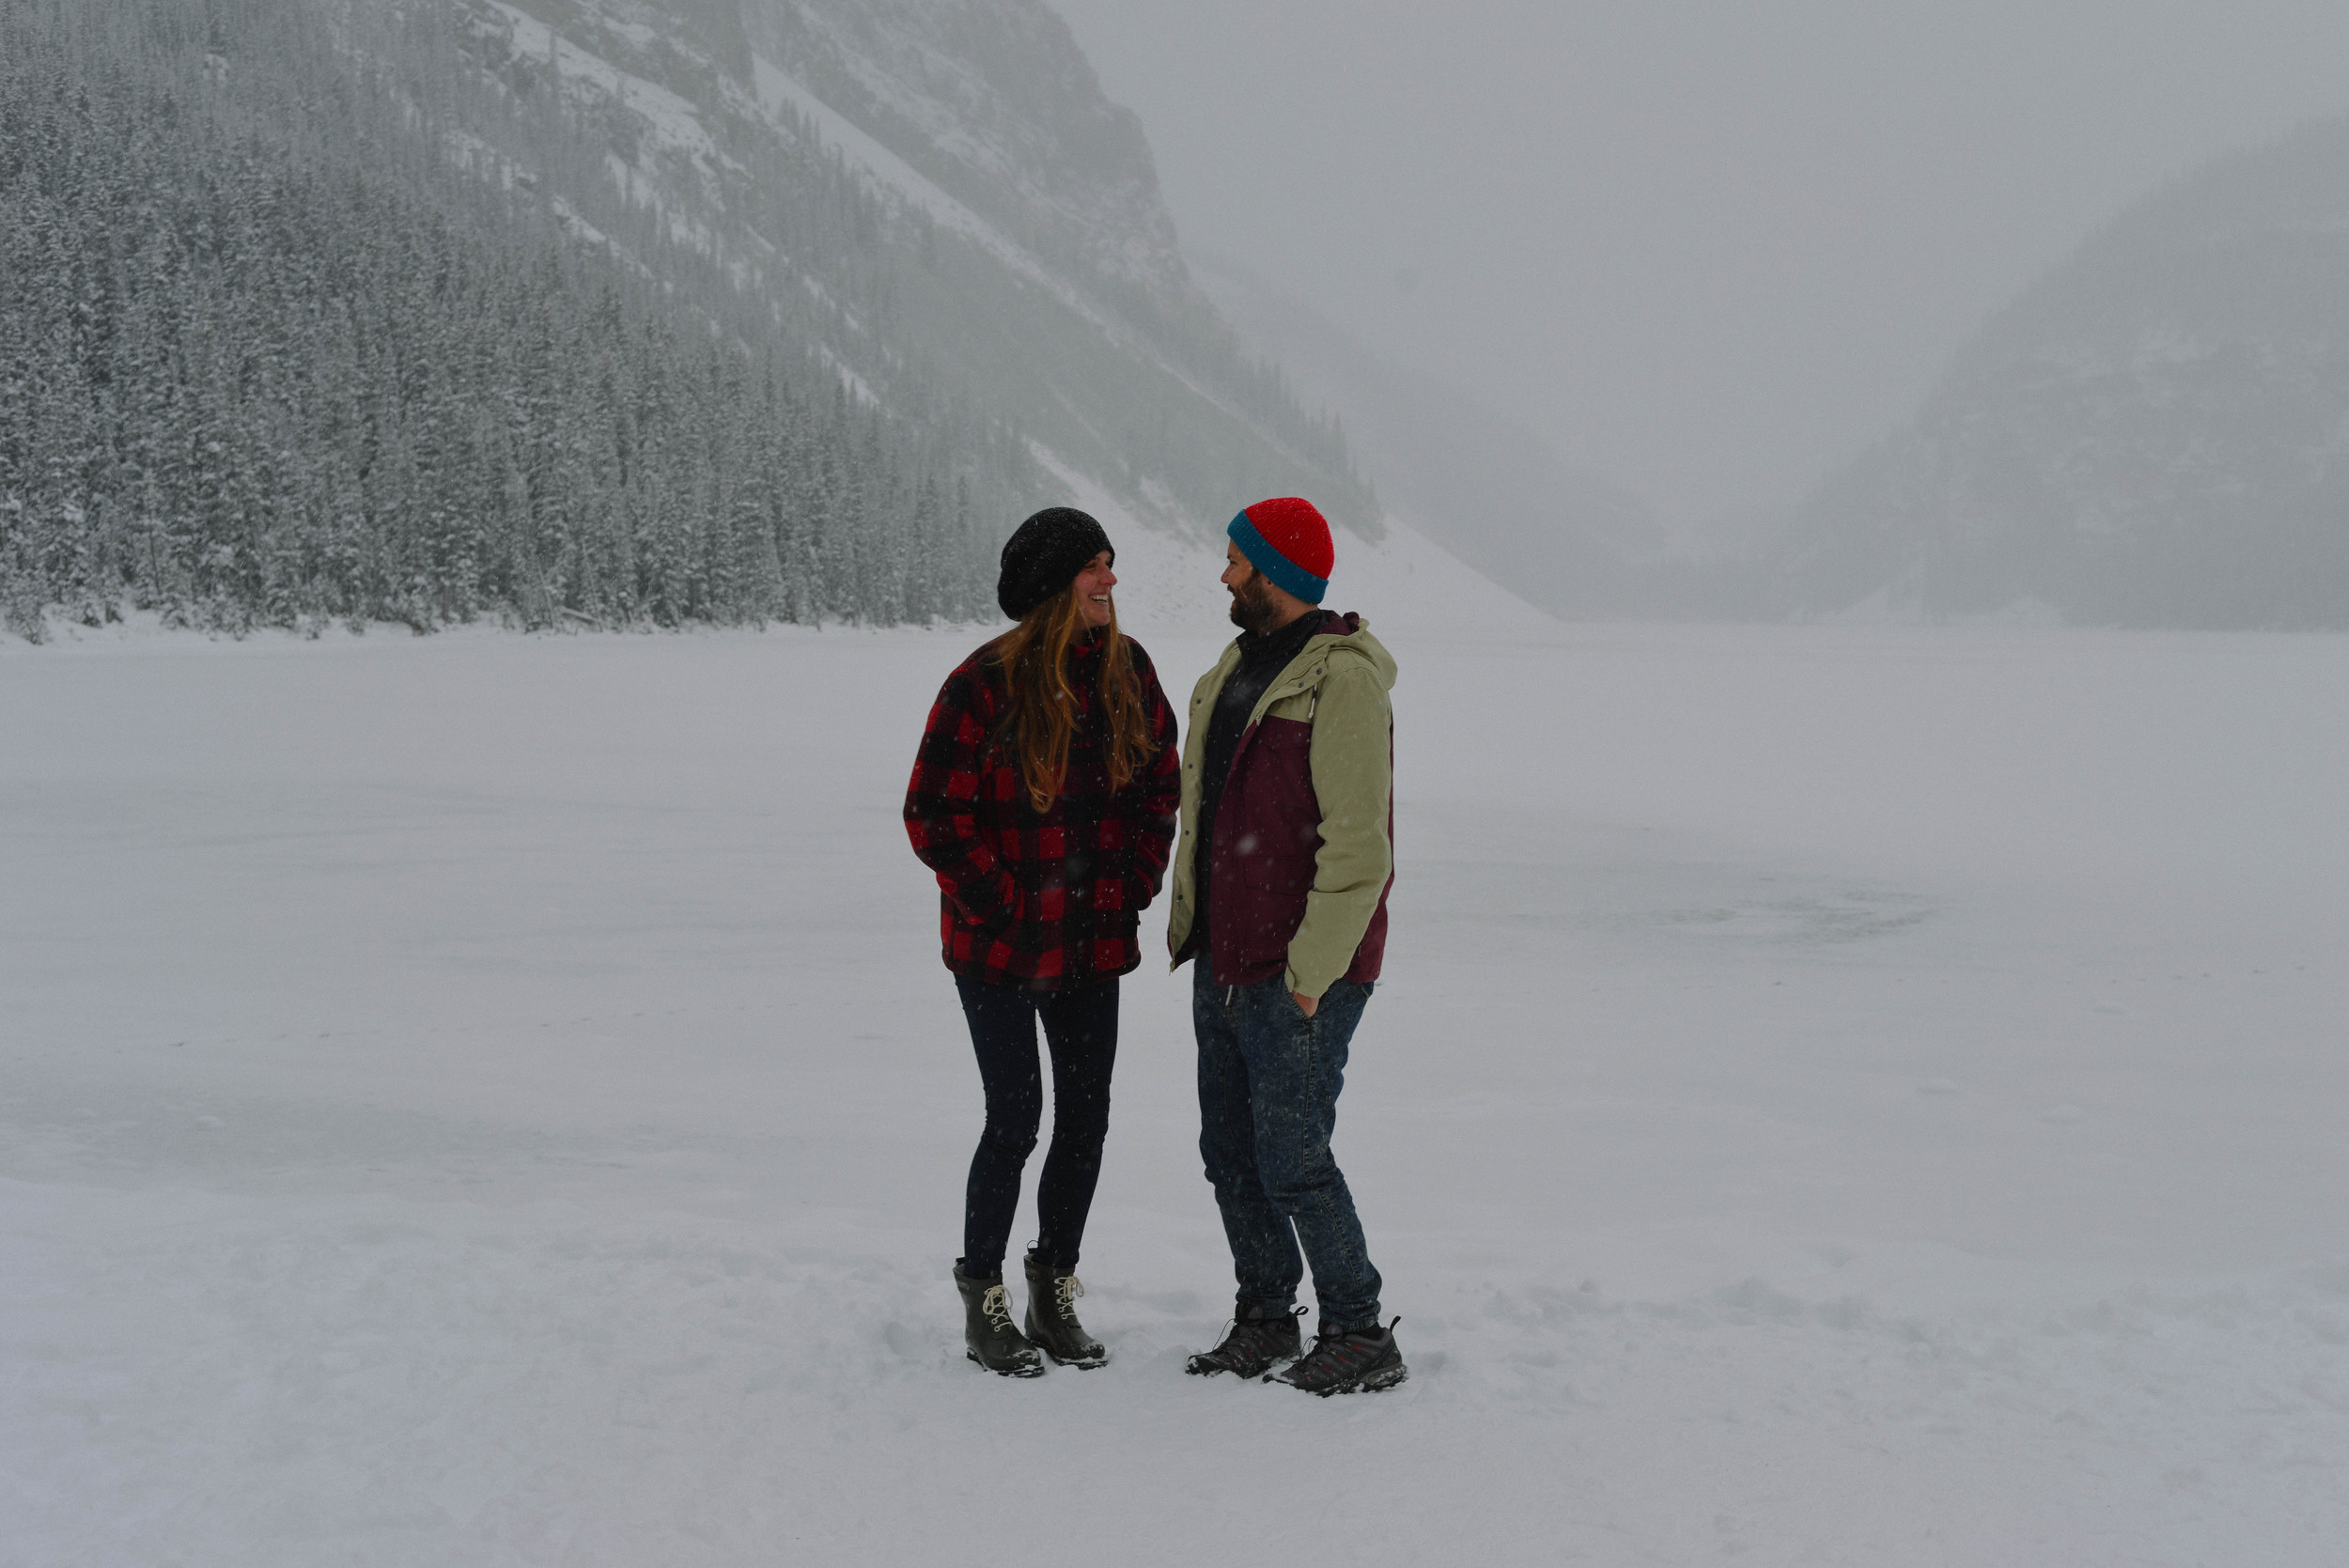 It was minus 26 degrees at Lake Louise, just a bit chilly!